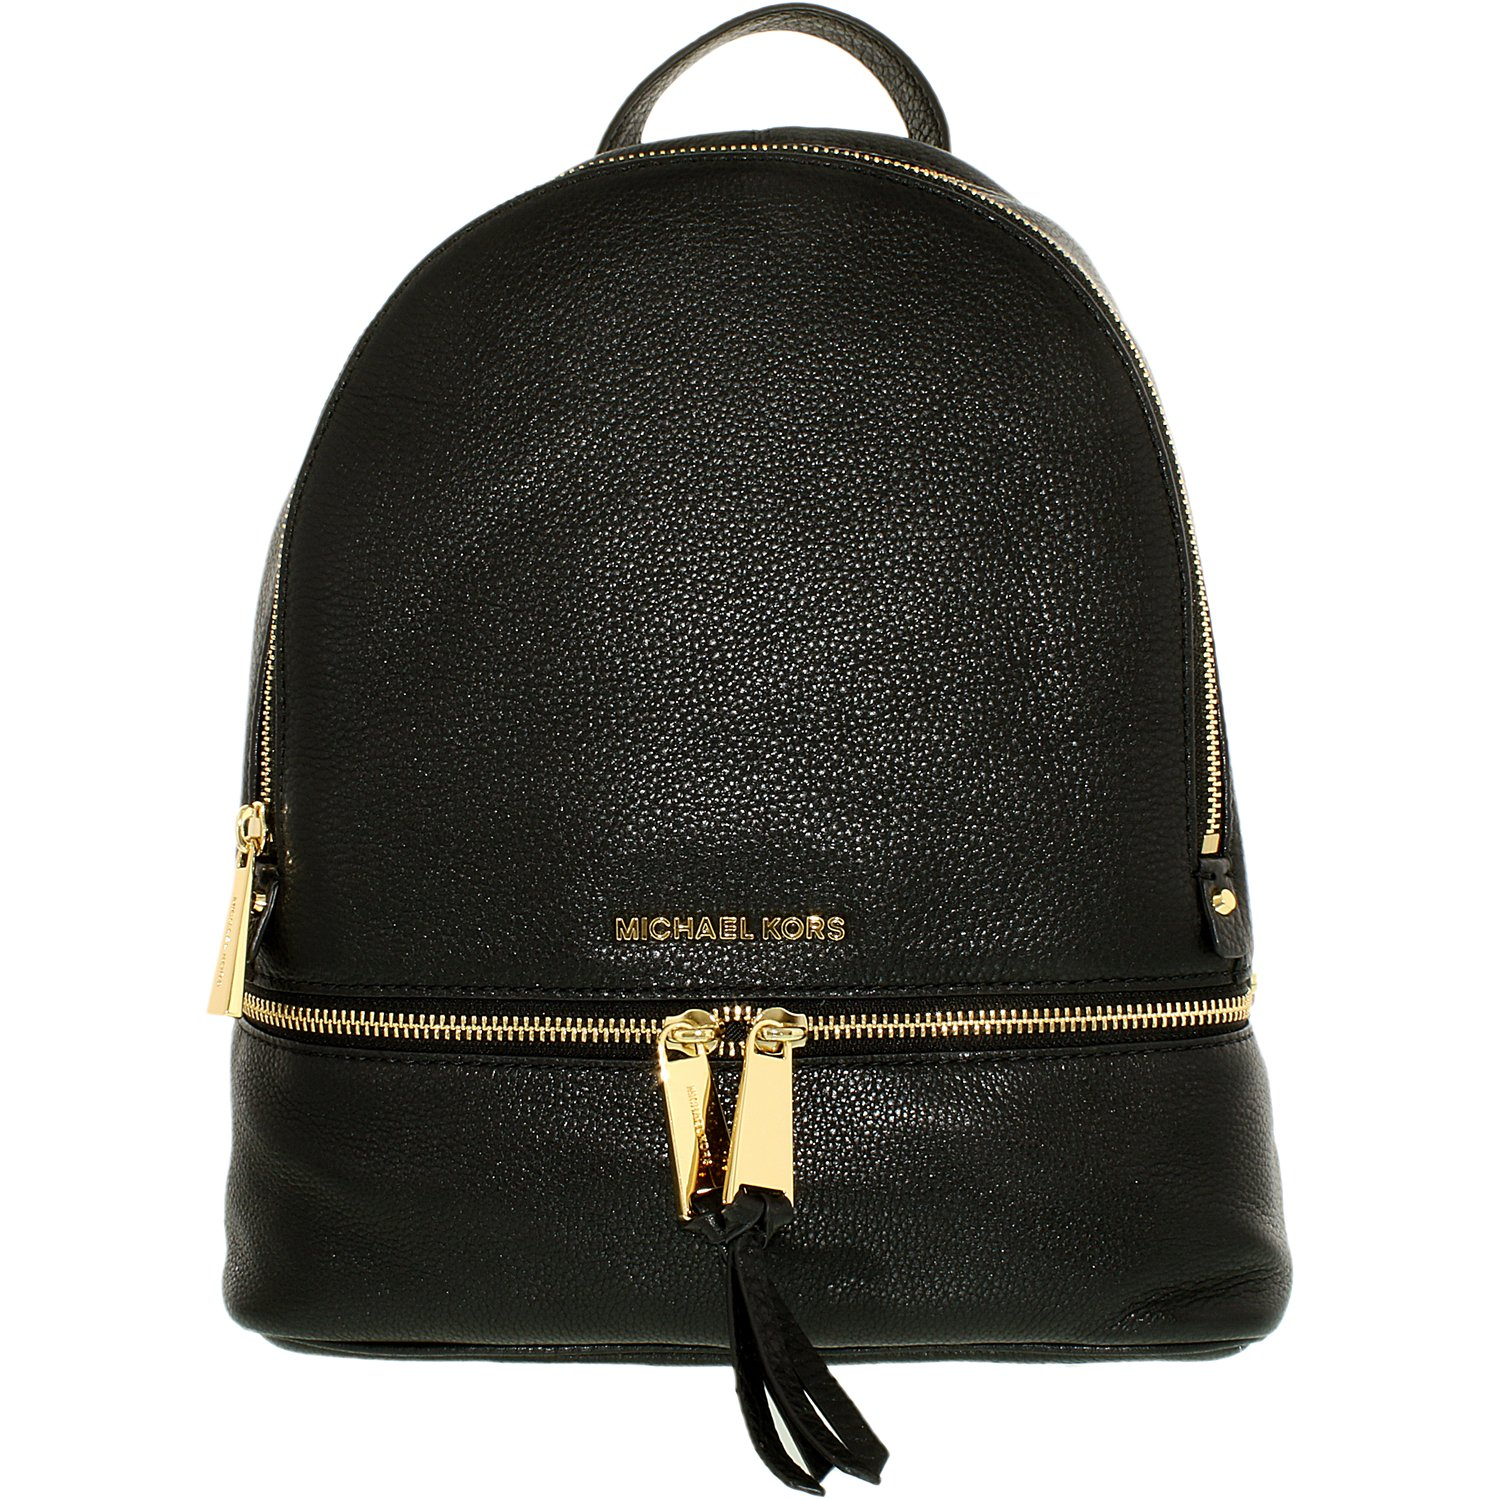 Michael Kors Women's Small Rhea Leather Backpack - Black